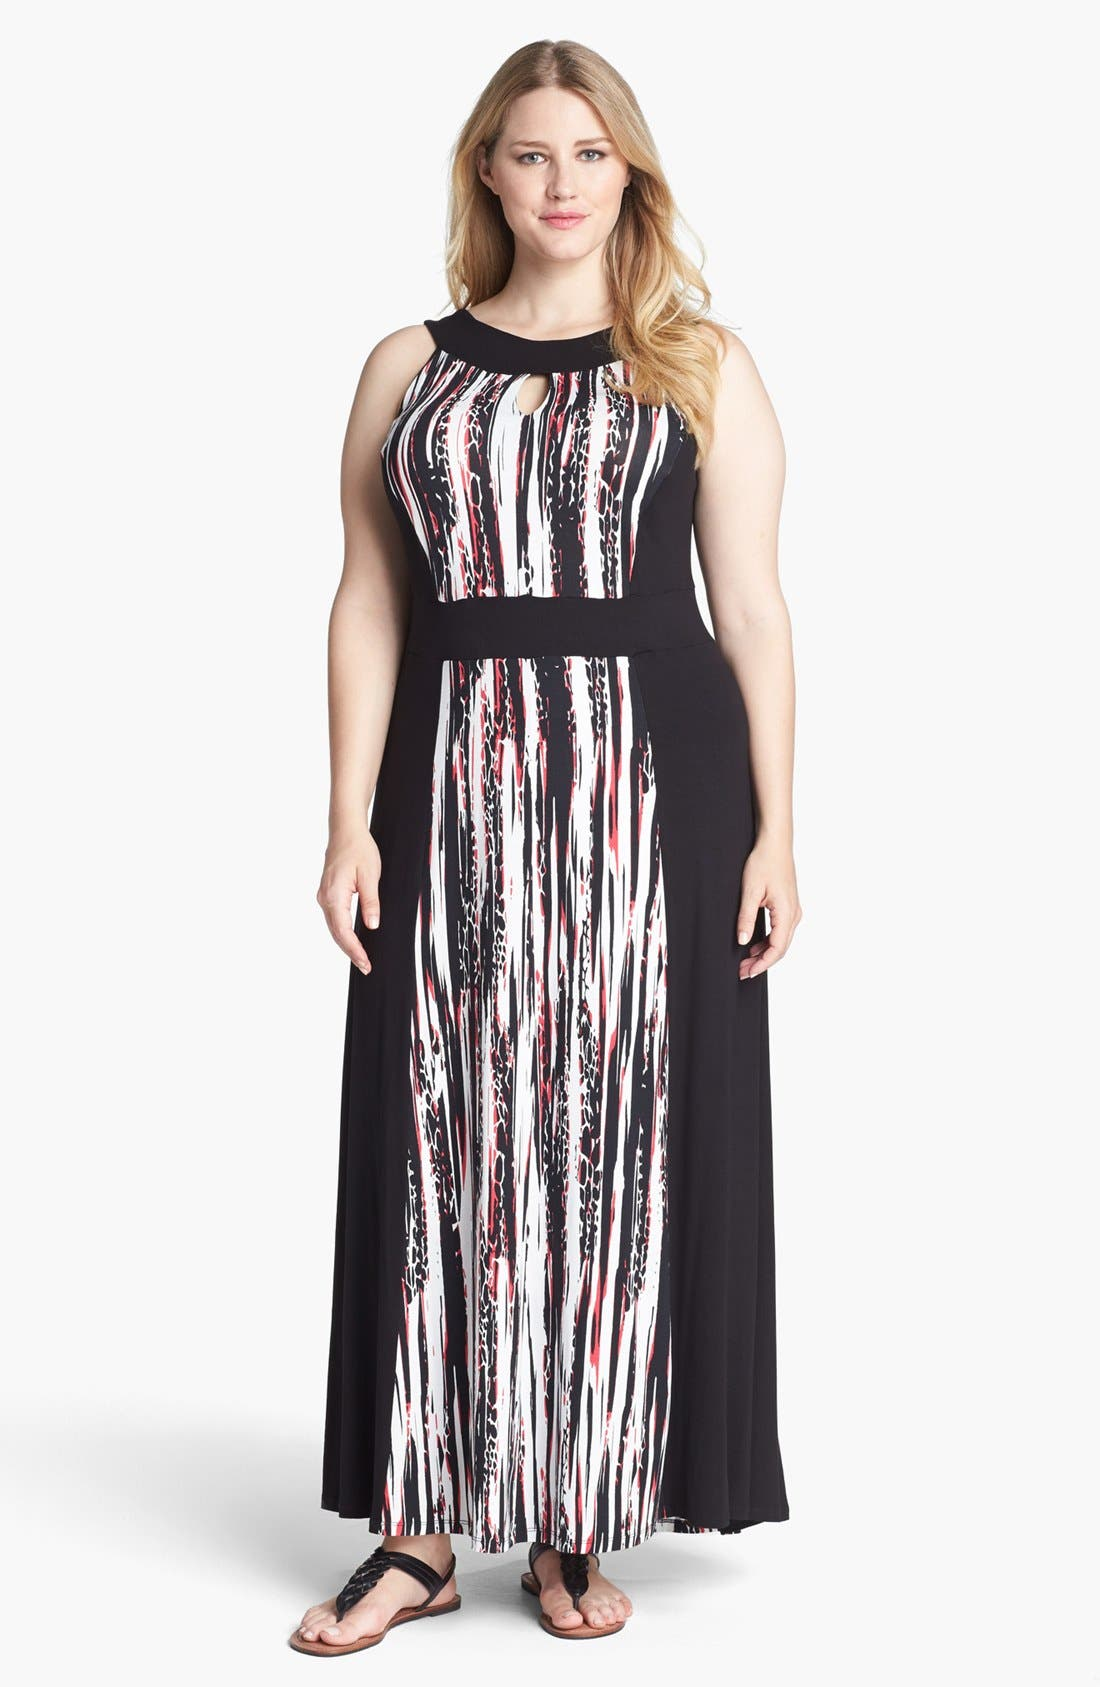 Alternate Image 1 Selected - Evans Graphic Print Jersey Maxi Dress (Plus Size)